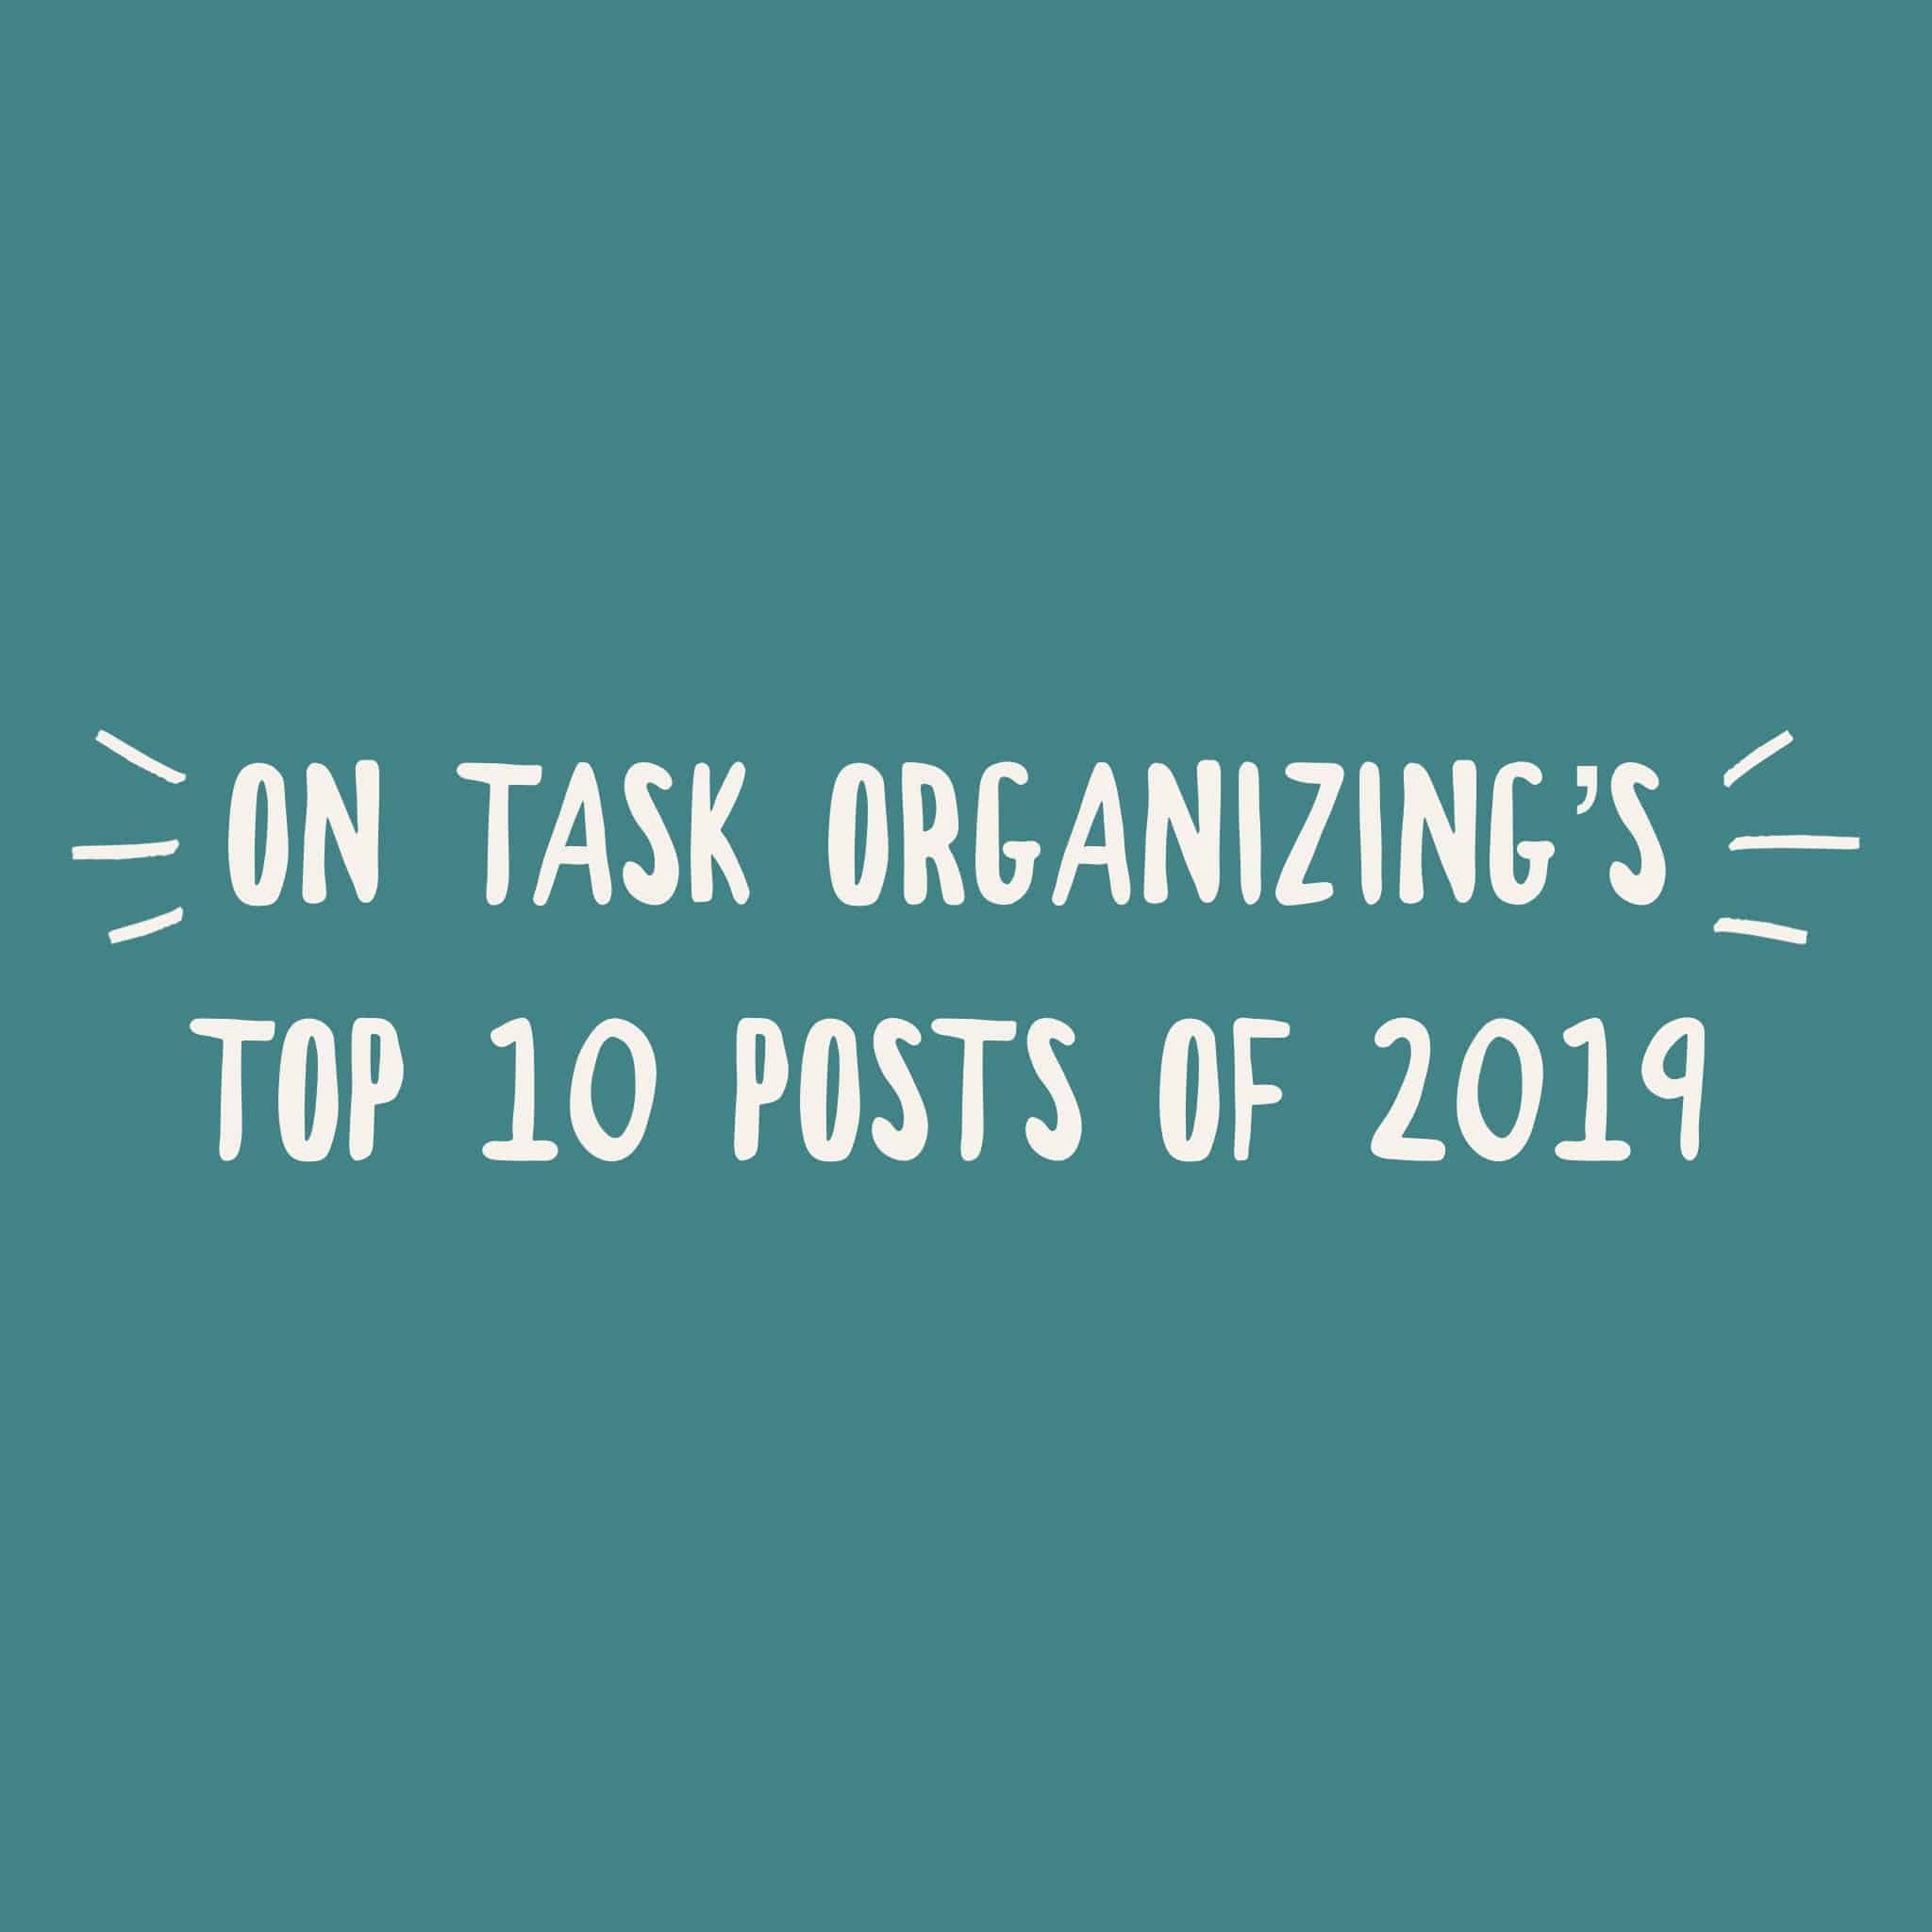 On Task Organizing's Top 10 Posts of 2019